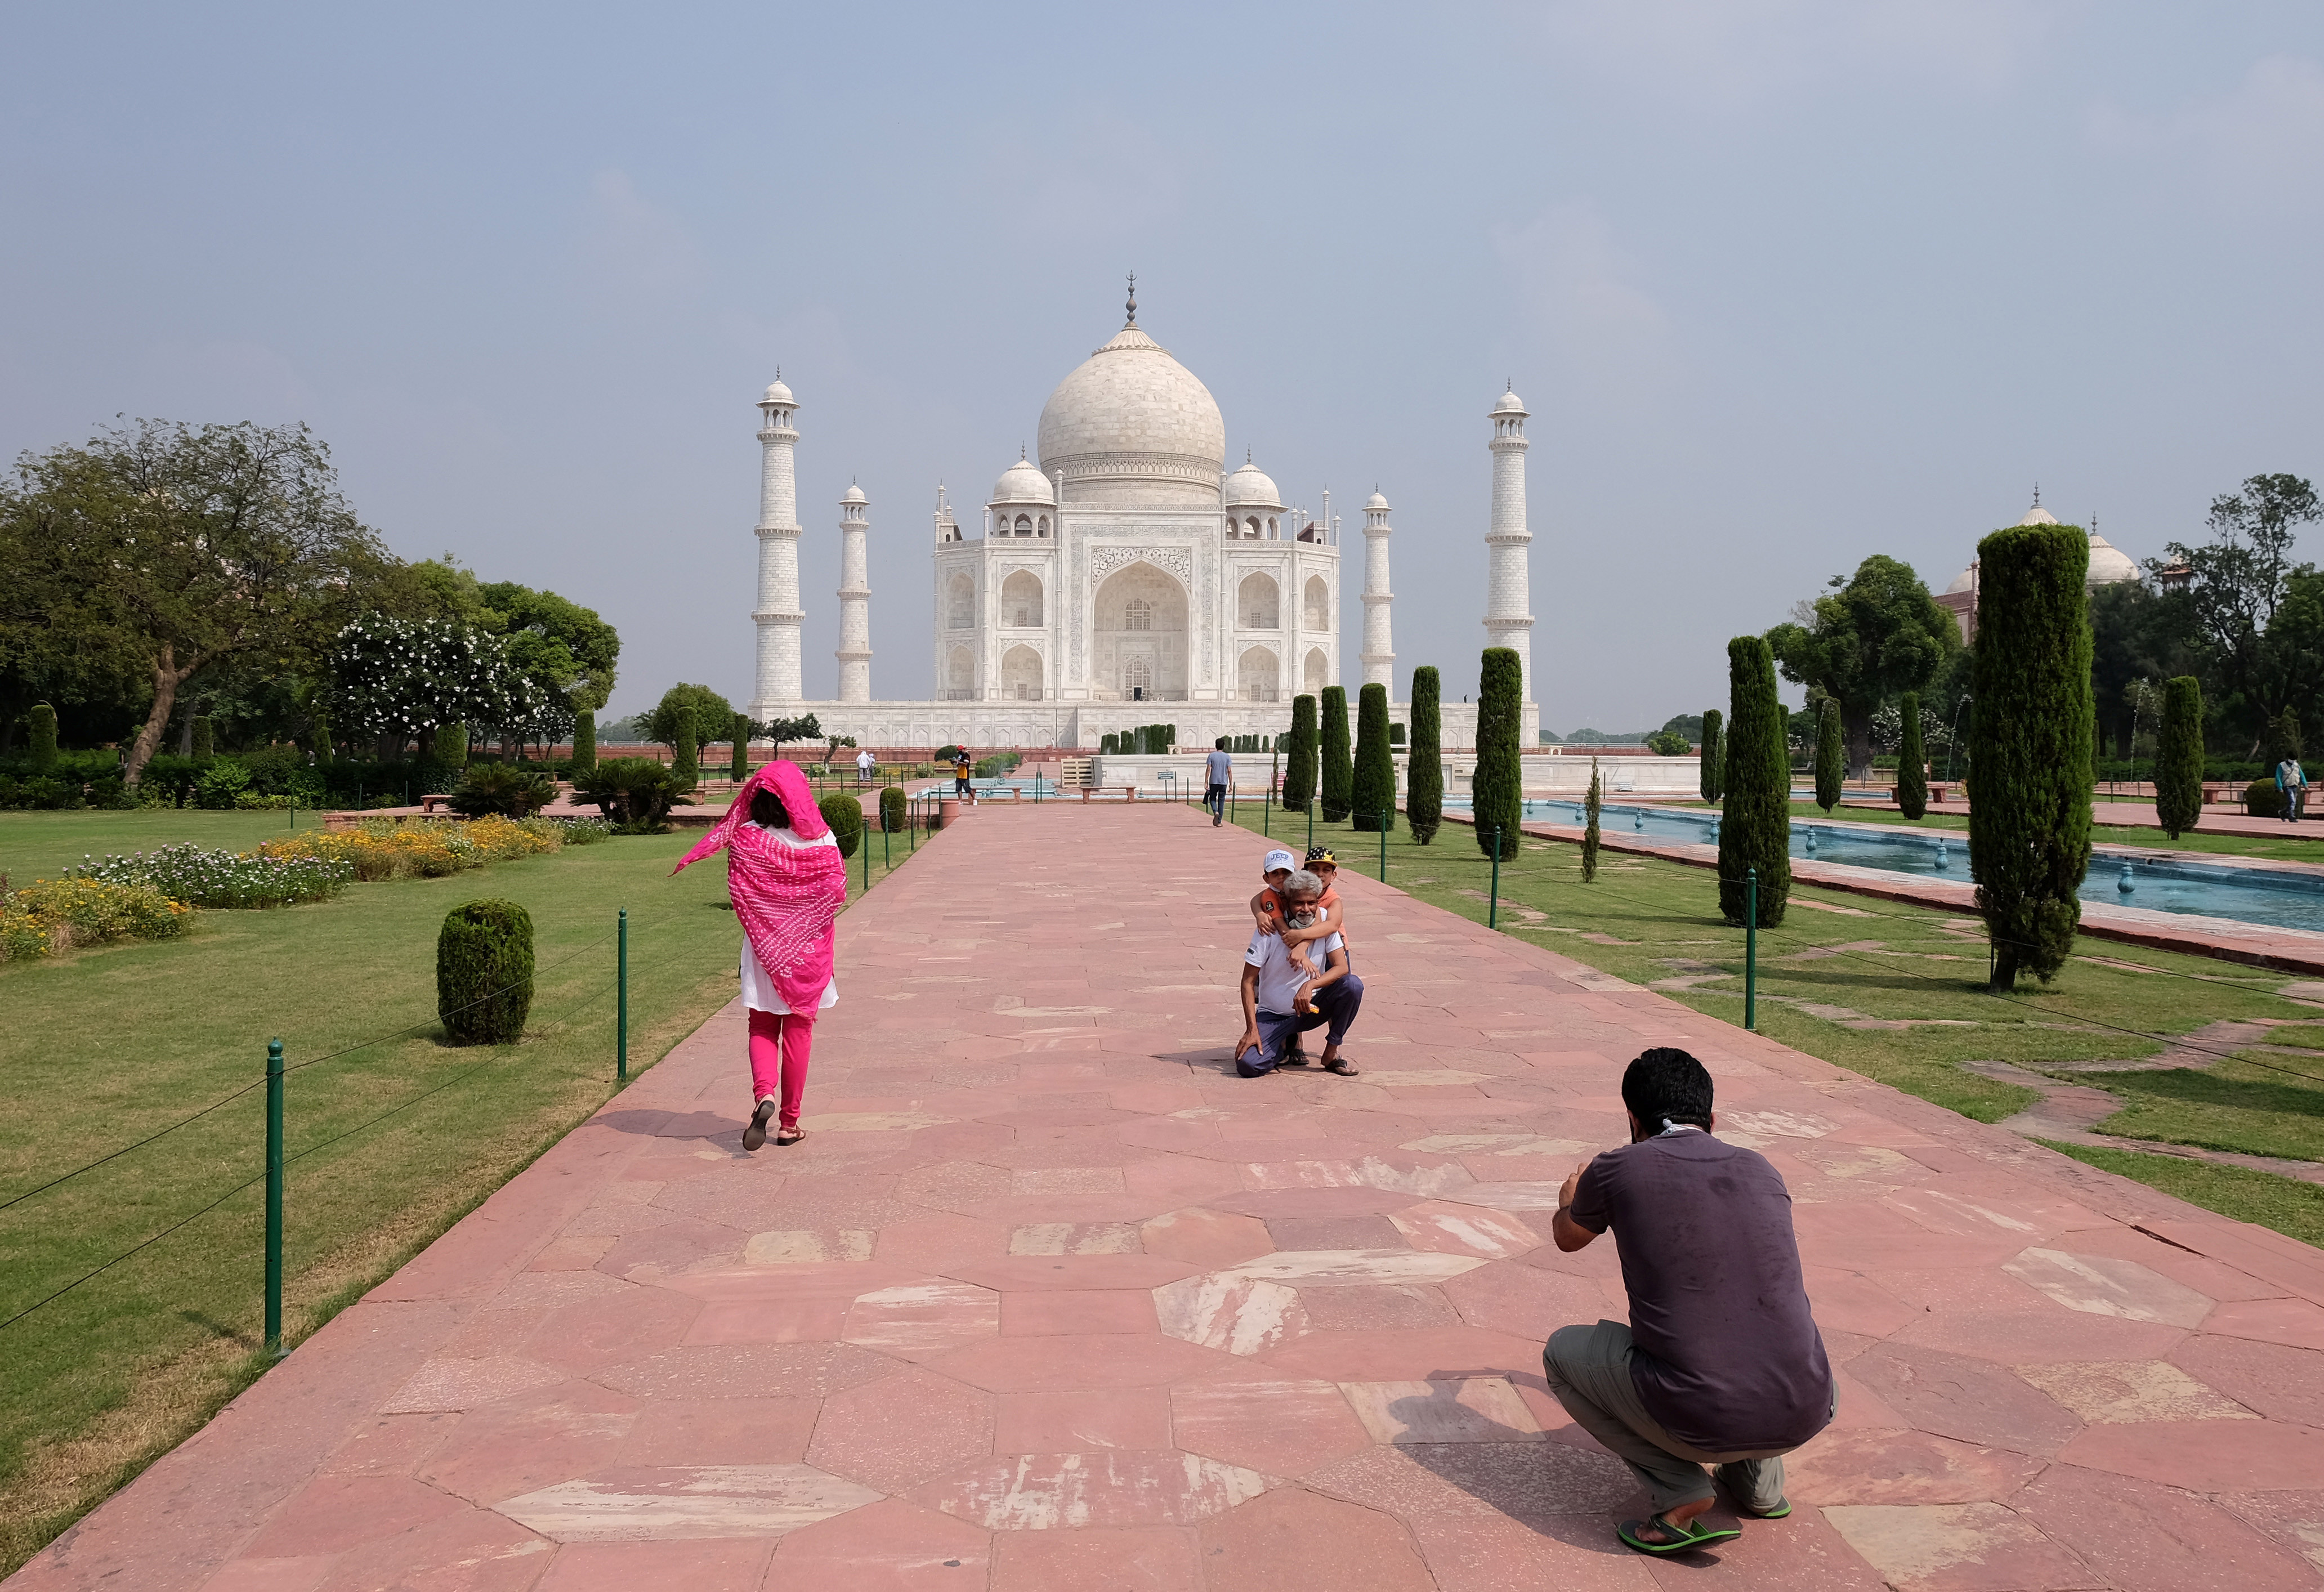 A man gets his photograph taken in front of Taj Mahal after authorities reopened the monument to visitors, amidst the coronavirus disease (COVID-19) outbreak, in Agra, India, September 21, 2020. REUTERS/Alasdair Pal